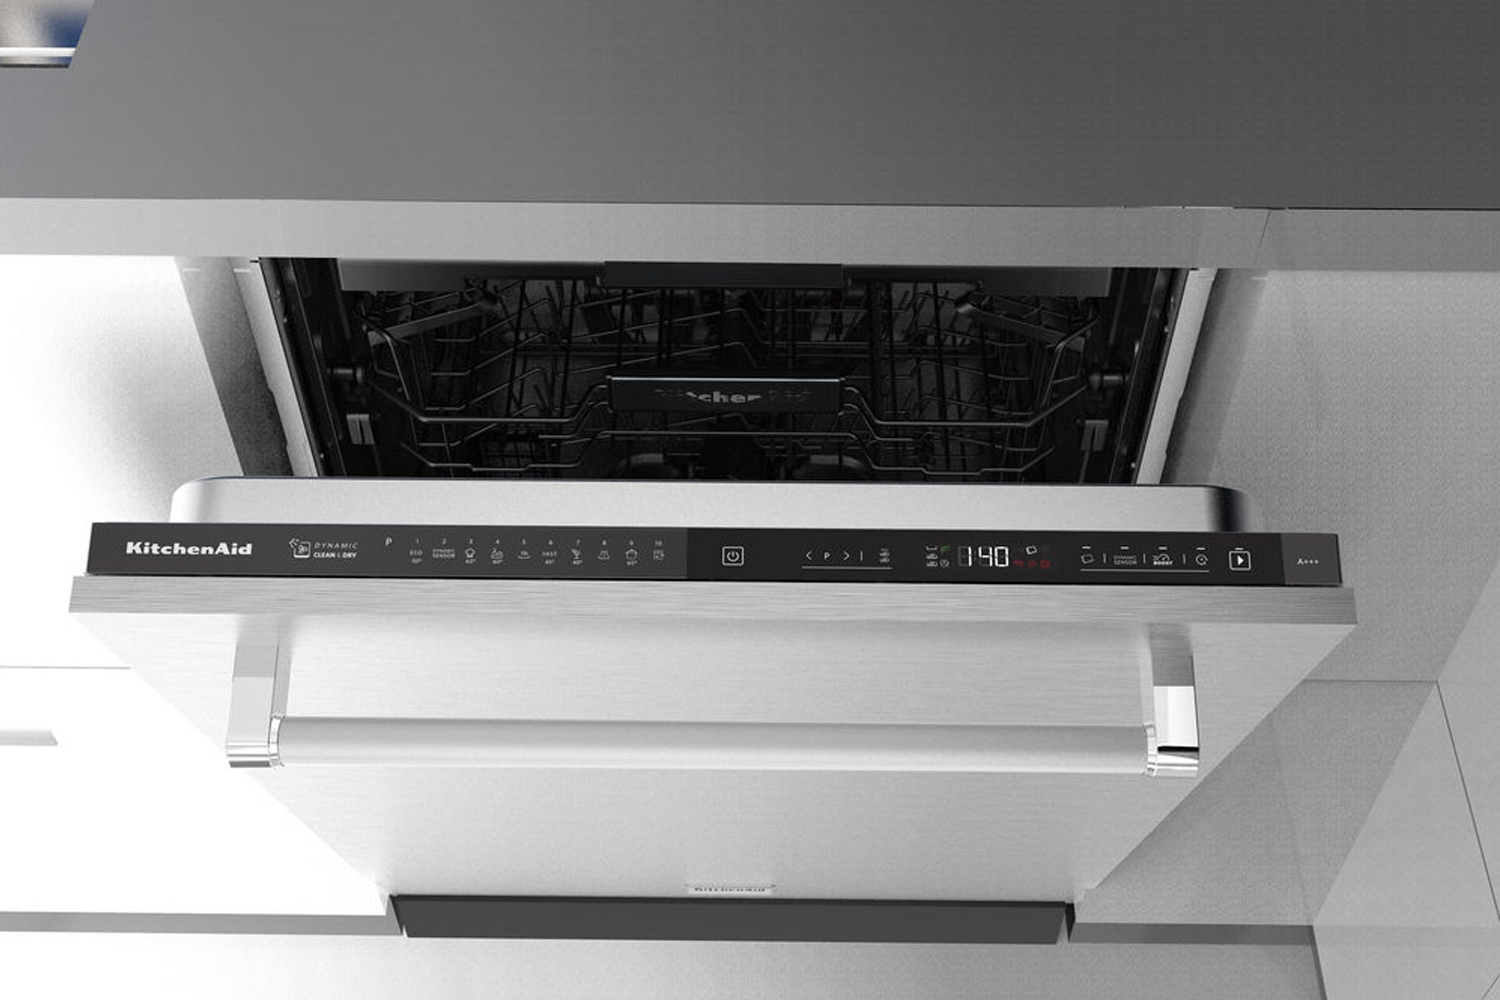 kitchen aide dishwasher affordable curtains kitchenaid integrated 14 place kdscm82142 ireland